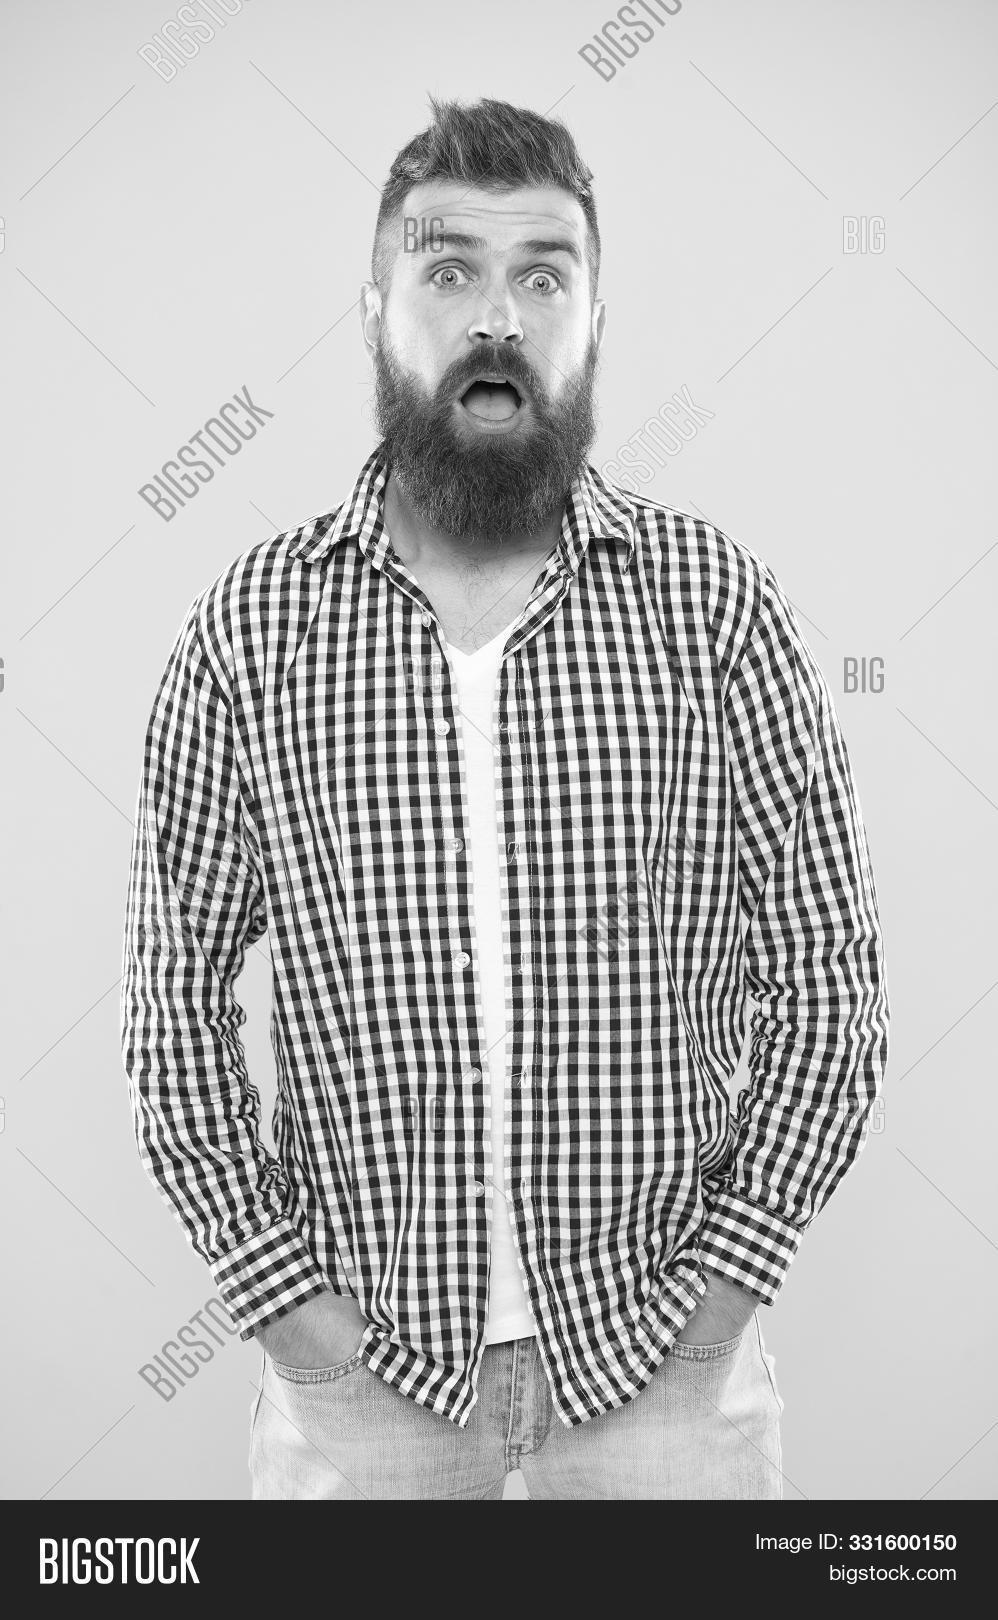 adult,appearance,background,barber,beard,bearded,brutal,care,casual,caucasian,concept,emotional,emotions,expression,face,fashion,fashionable,guy,haircut,hairdresser,handsome,hipster,lumbersexual,macho,maintain,man,masculine,masculinity,mustache,quite,shirt,stand,stylish,surprise,surprised,tips,unexpected,unshaven,wonder,yellow